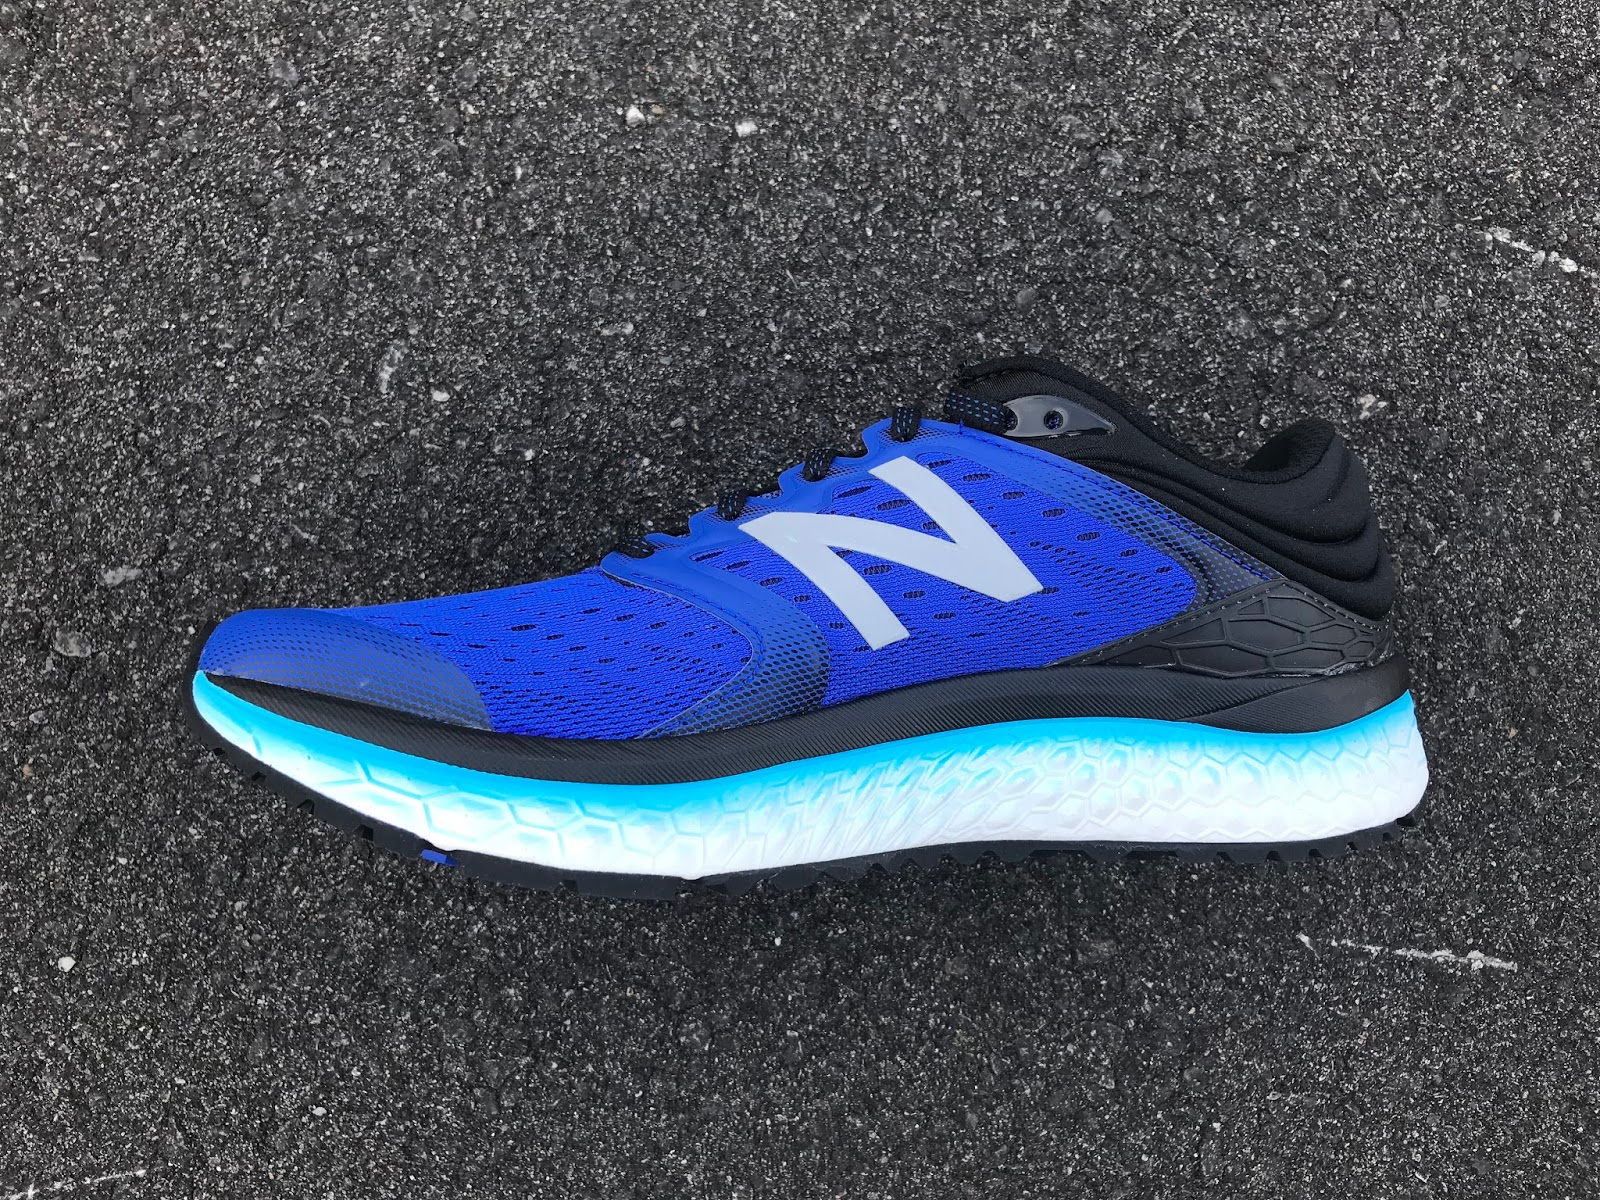 f237a6c8dc072 Dave  It s taken me awhile to fully understand where New Balance is going  with the Fresh Foam concept. To me